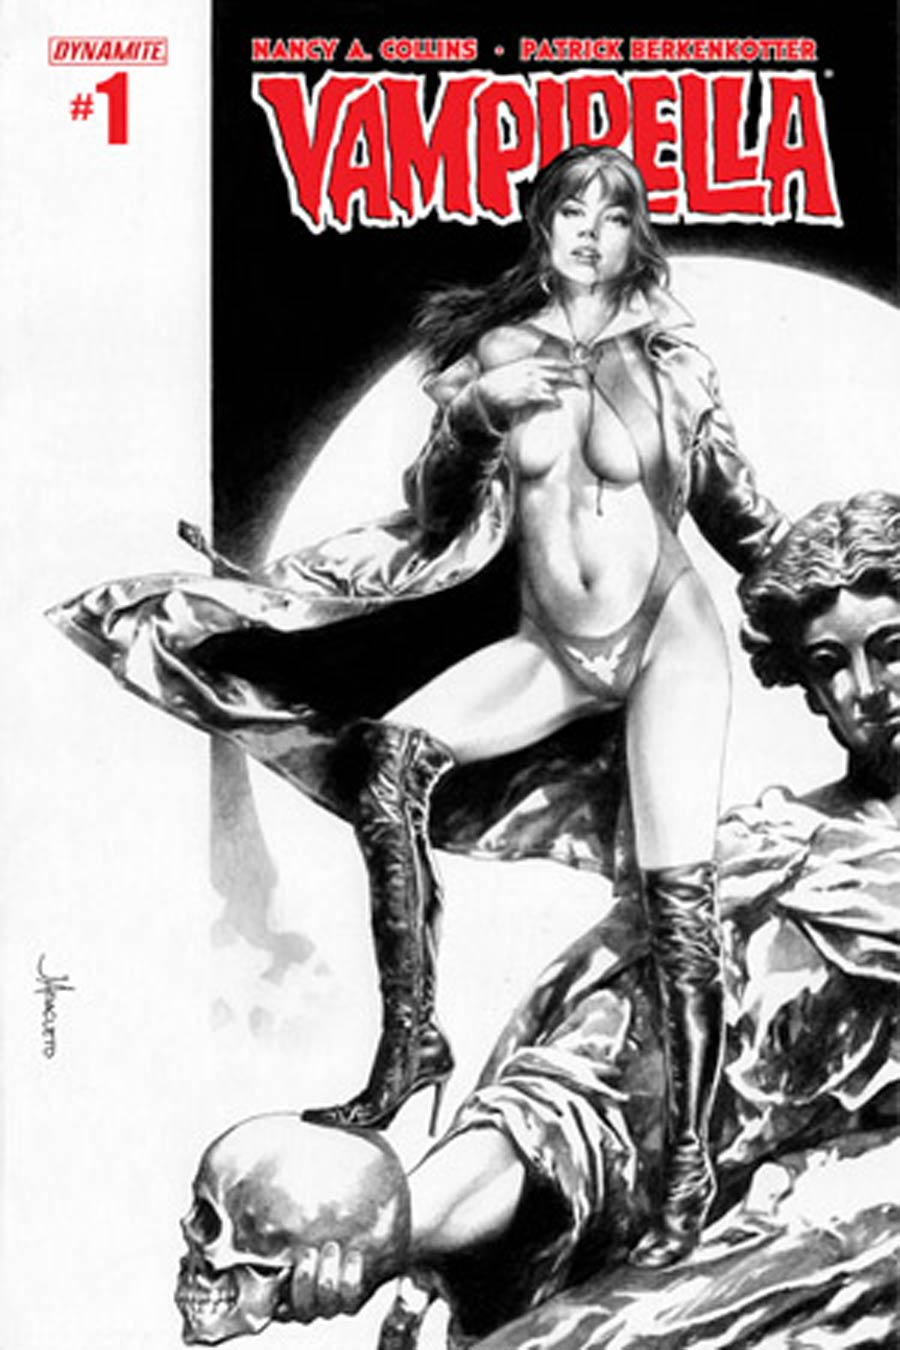 Vampirella Vol 5 #1 Cover T High-End Jay Anacleto Black & White Ultra-Limited Variant Cover